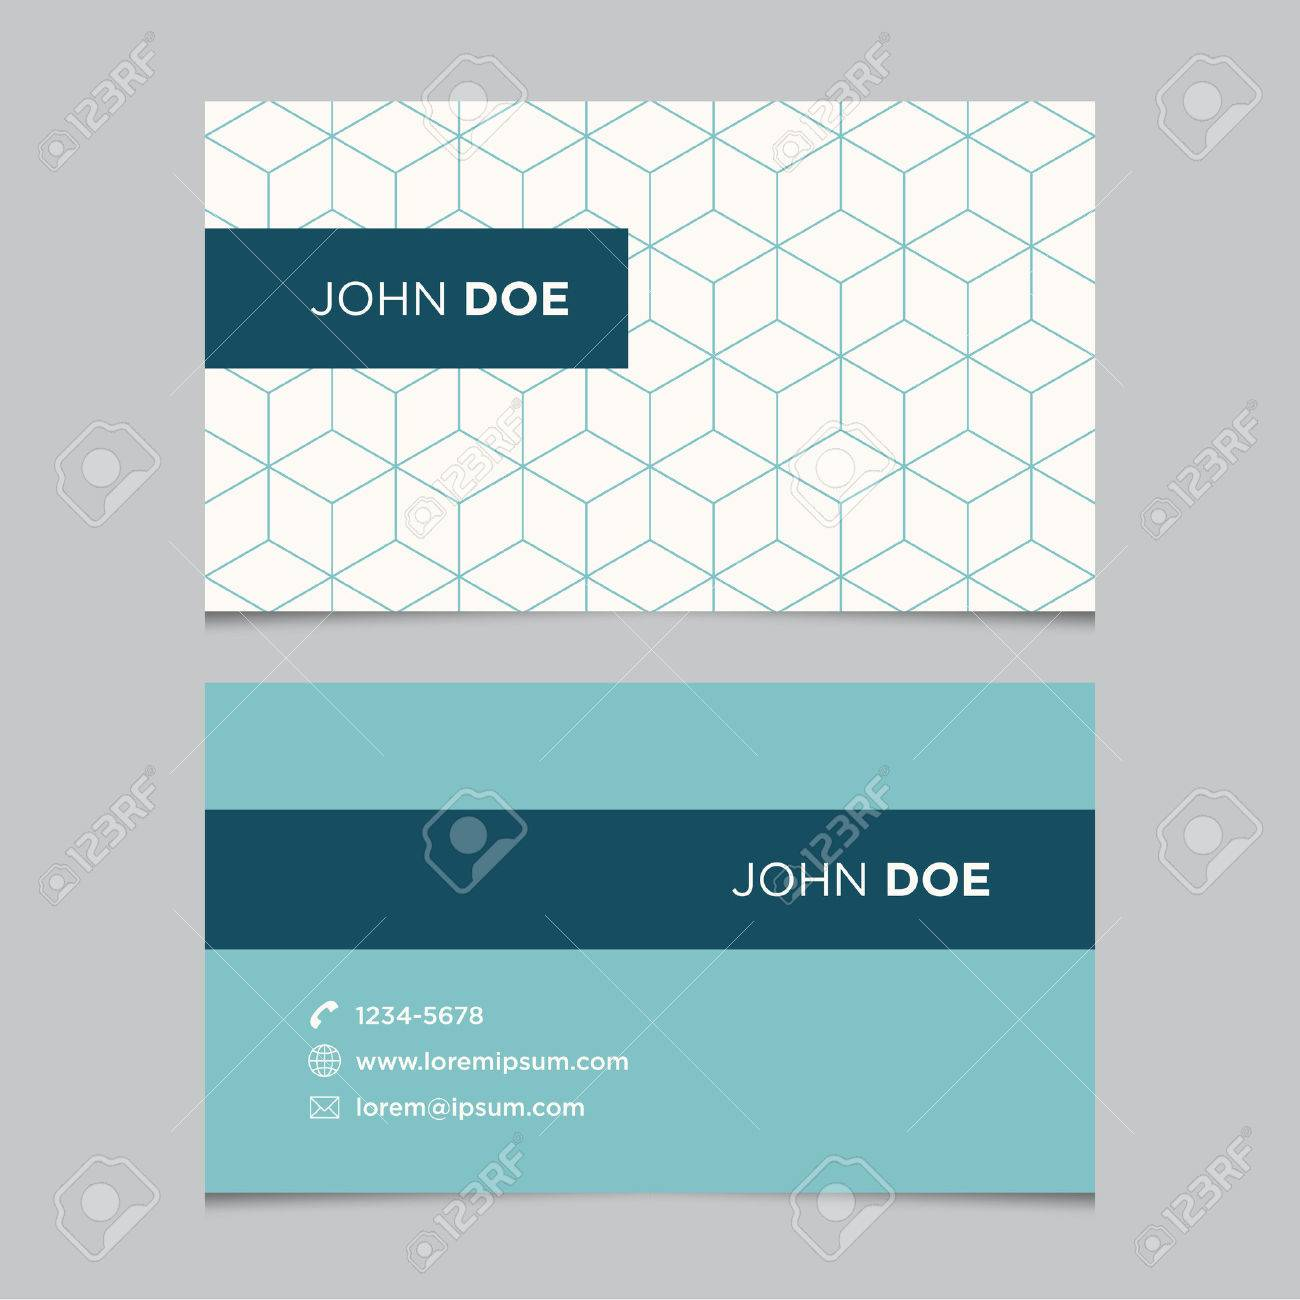 Business card template with background pattern Stock Vector - 29118901